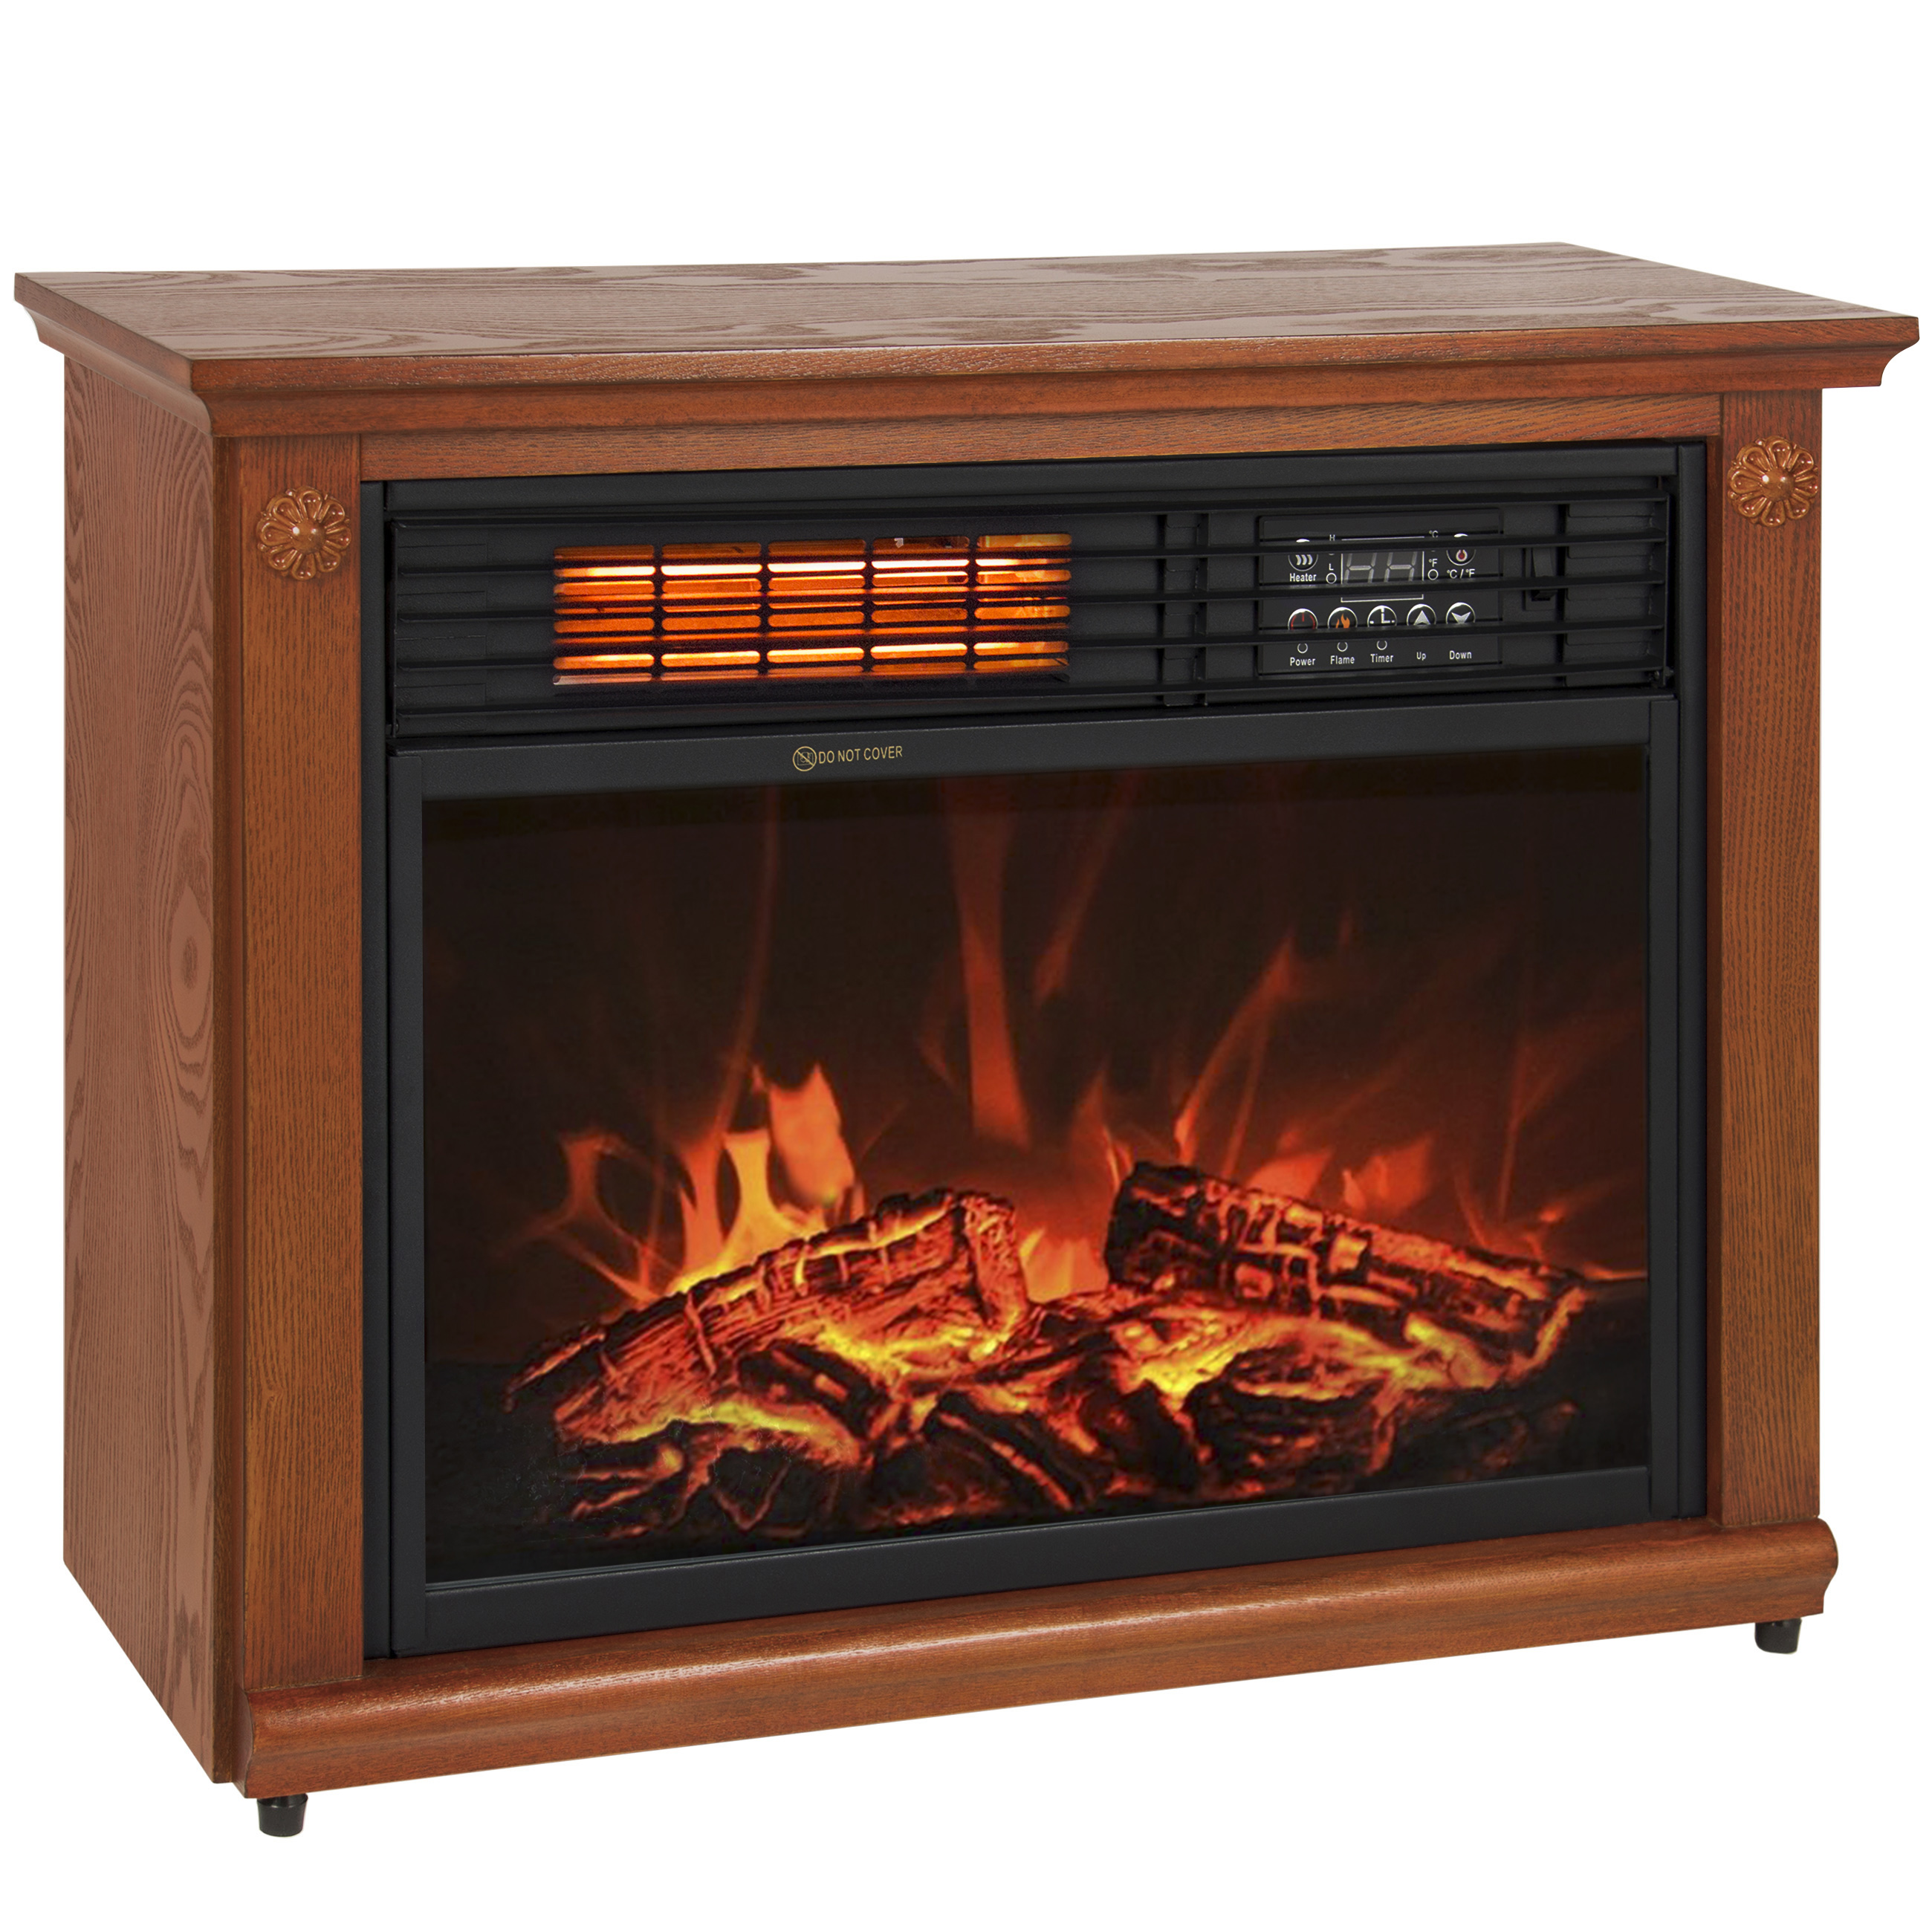 Large Room Infrared Quartz Electric Fireplace Heater Honey Oak Finish W/  Remote  Small Electric Fireplaces